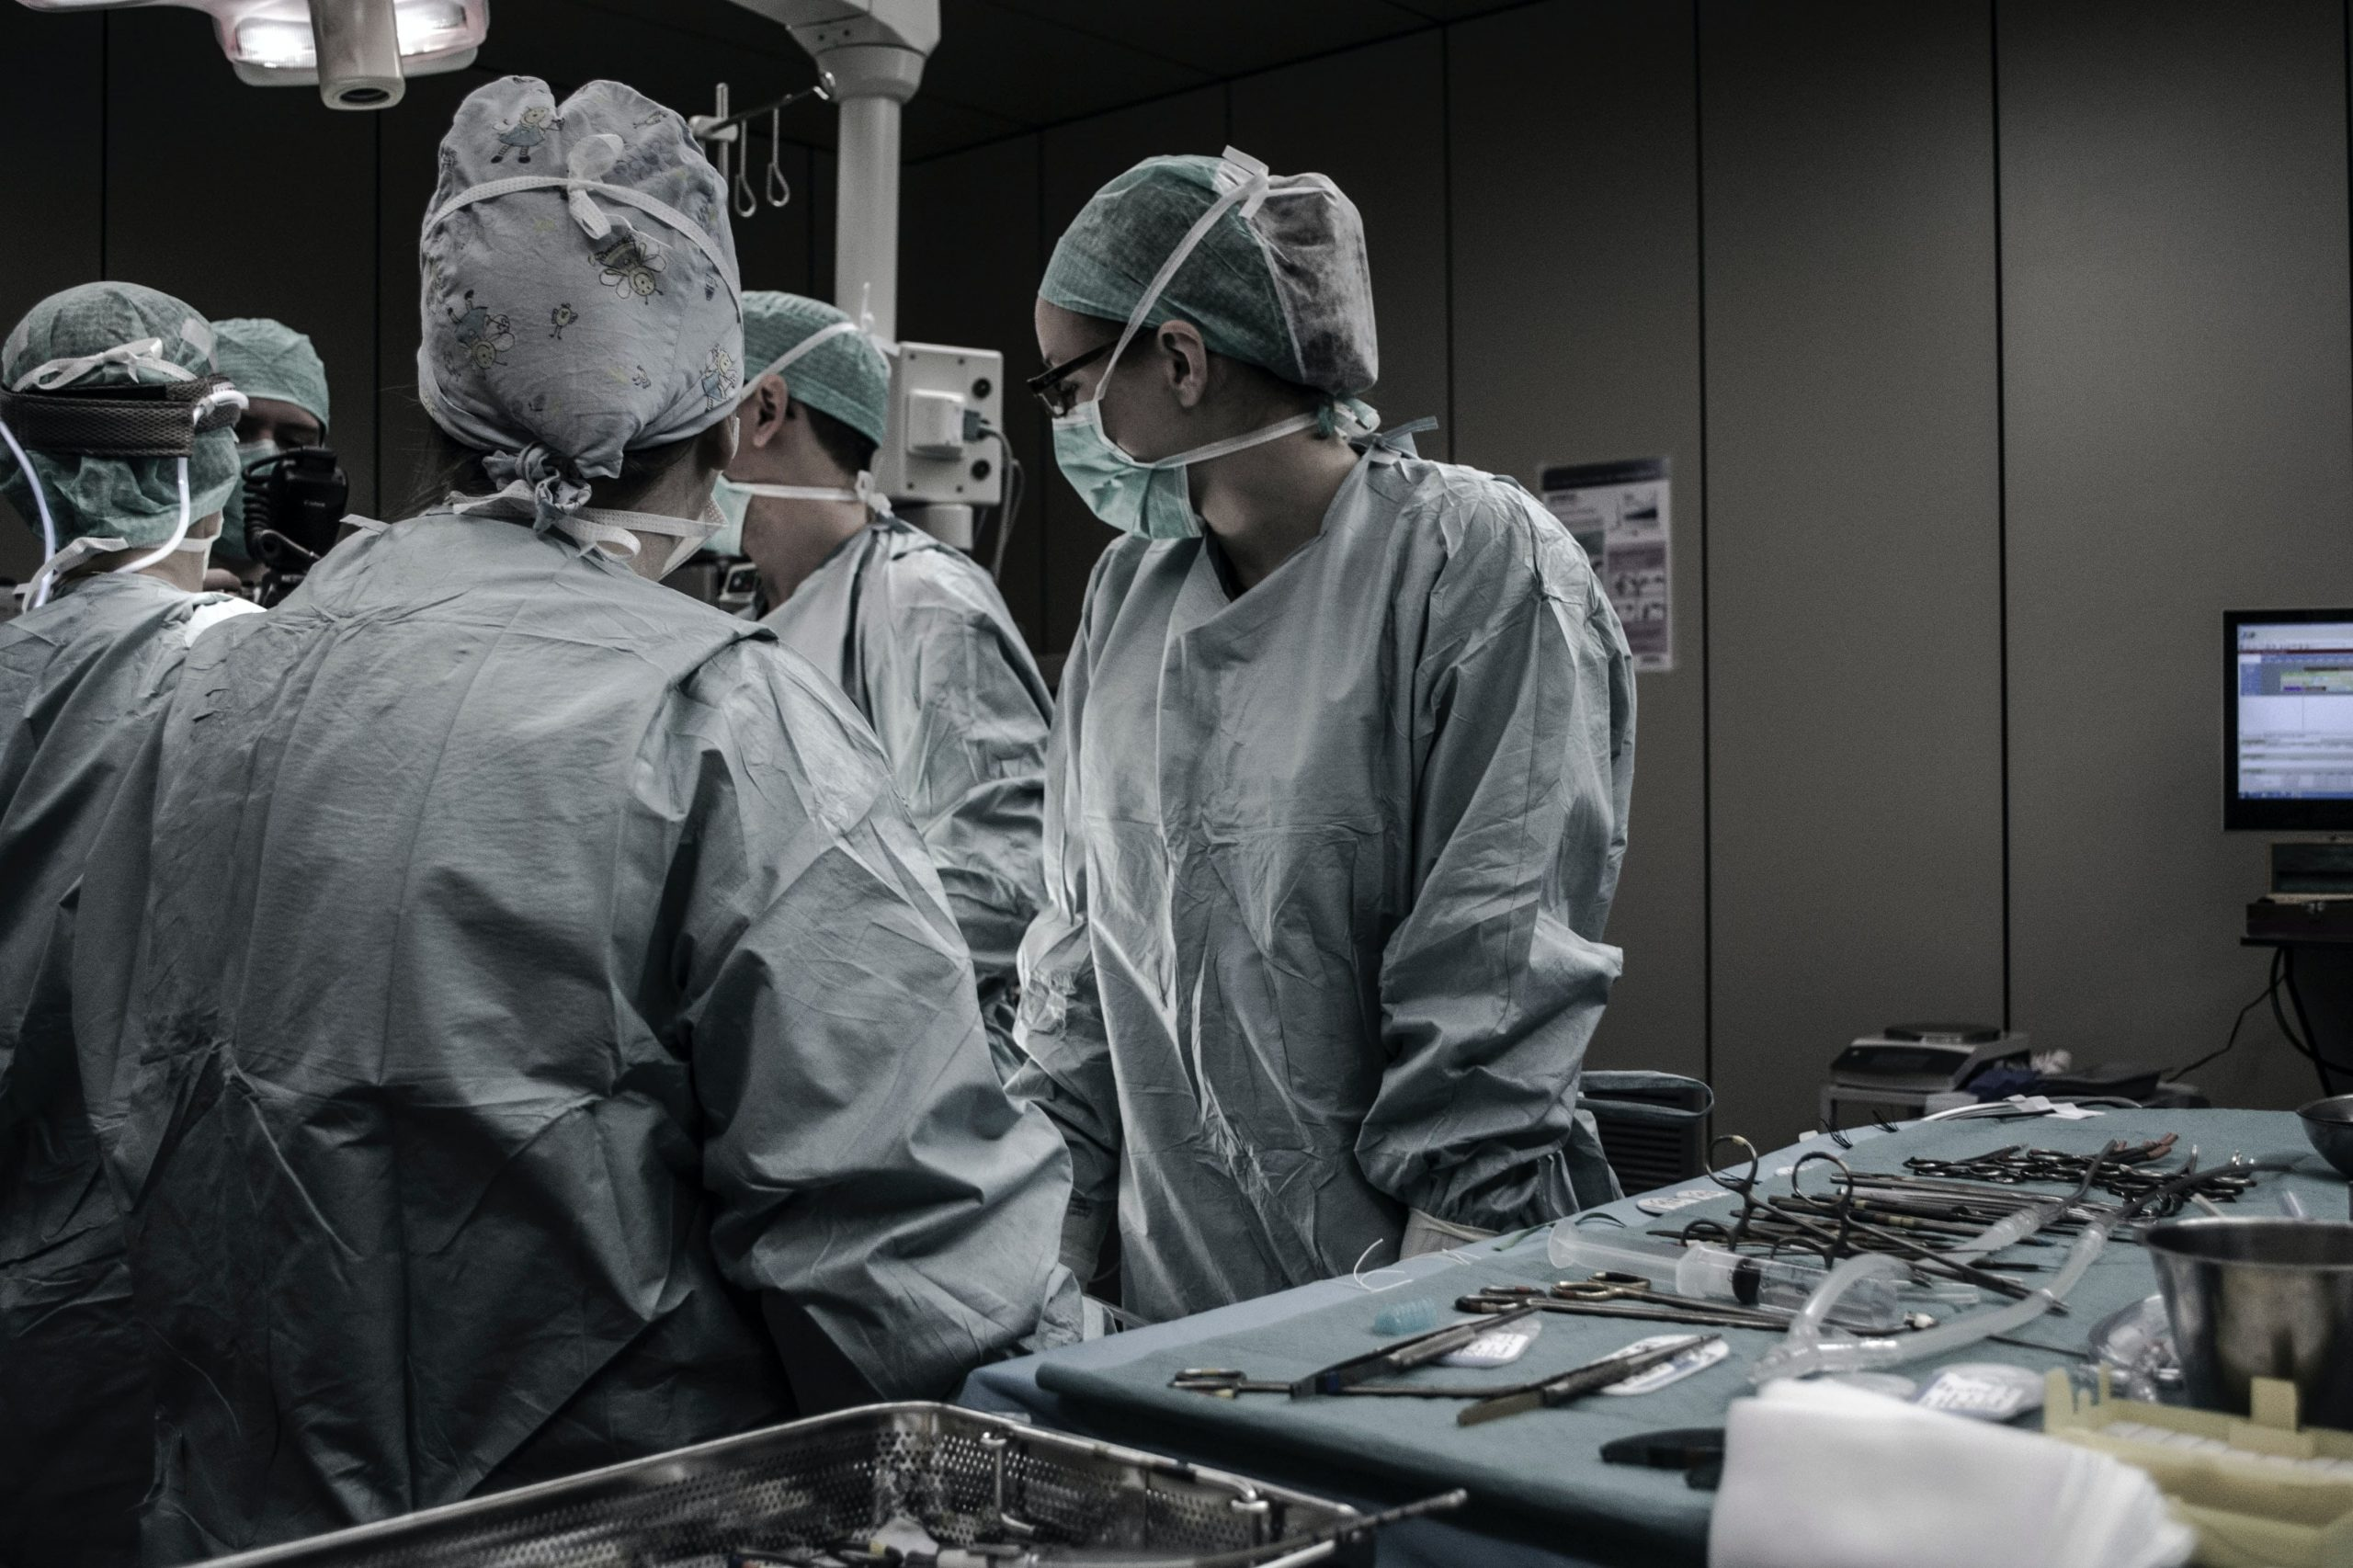 Easiest Medical Schools To Get Into In The UK